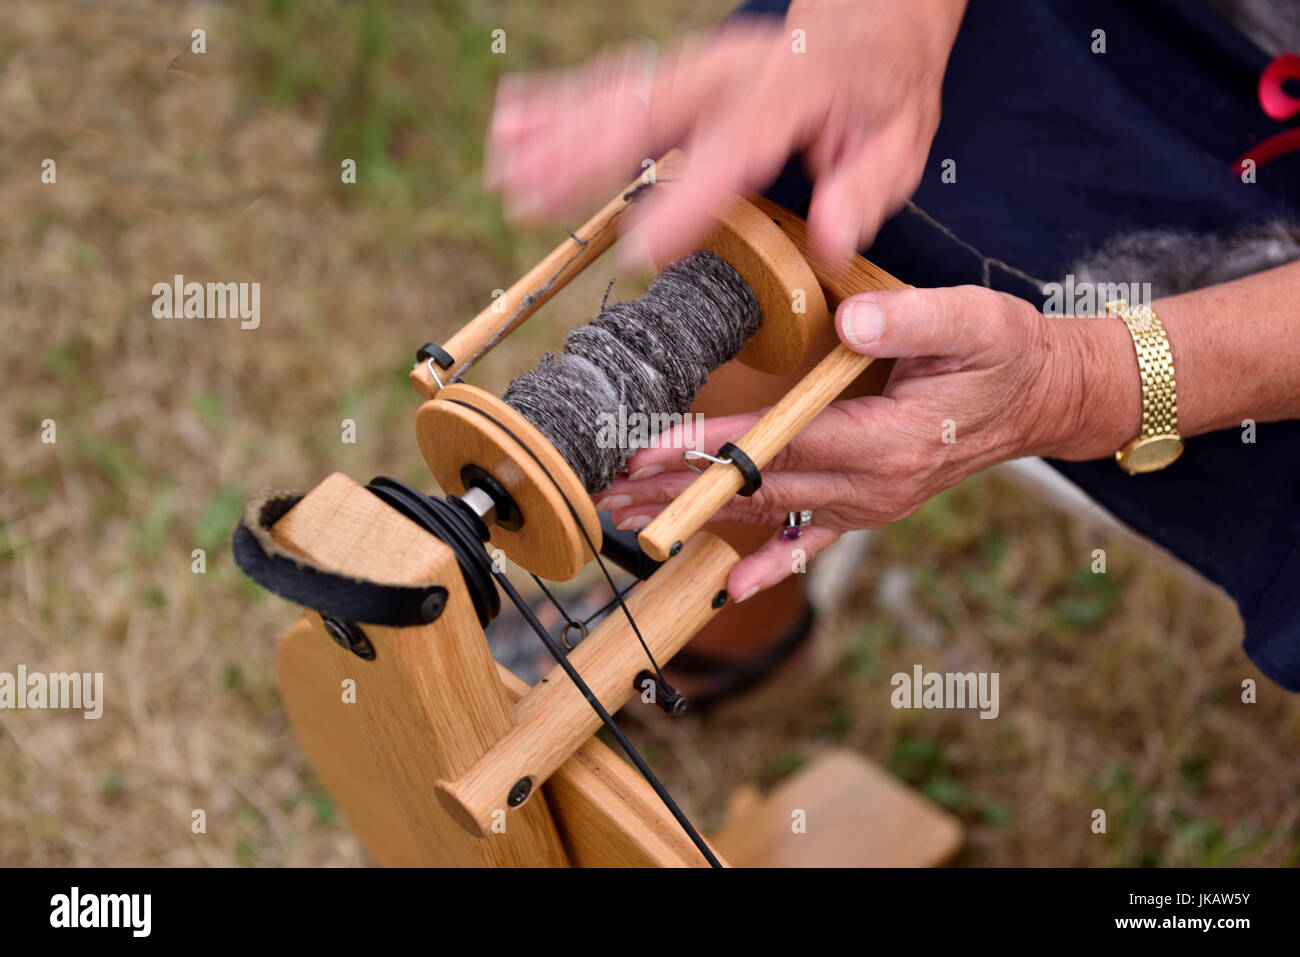 Close-up of woman's hands guiding thread on spinning wheel bobbin - Stock Image